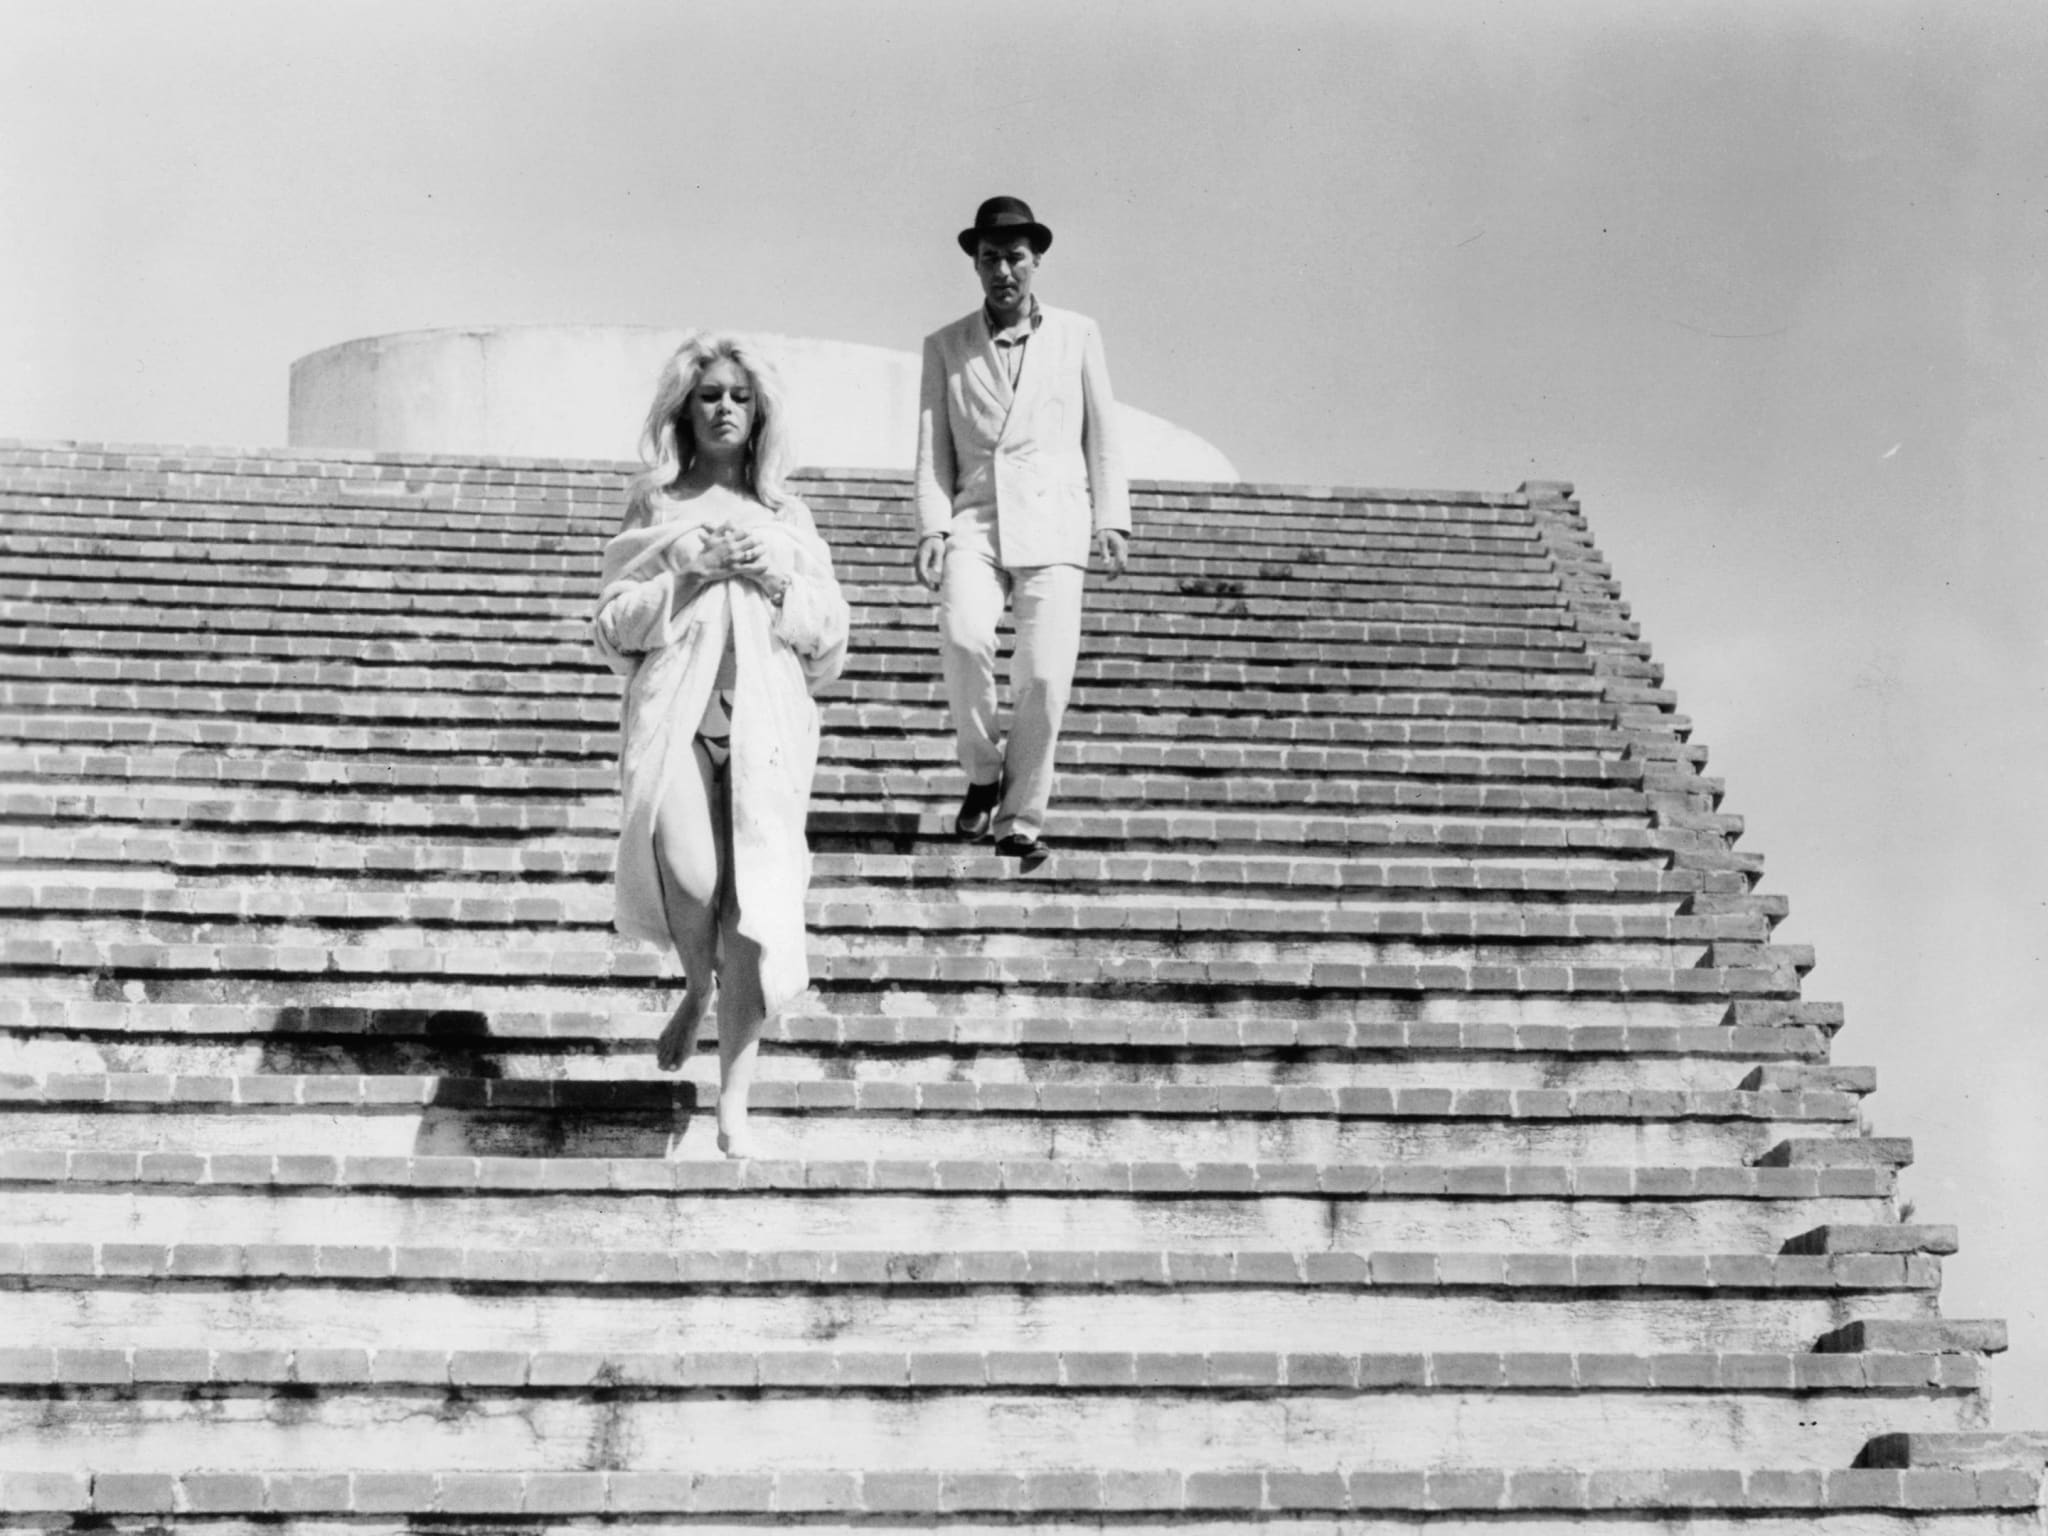 A woman and man walking down a wide outdoor staircase.